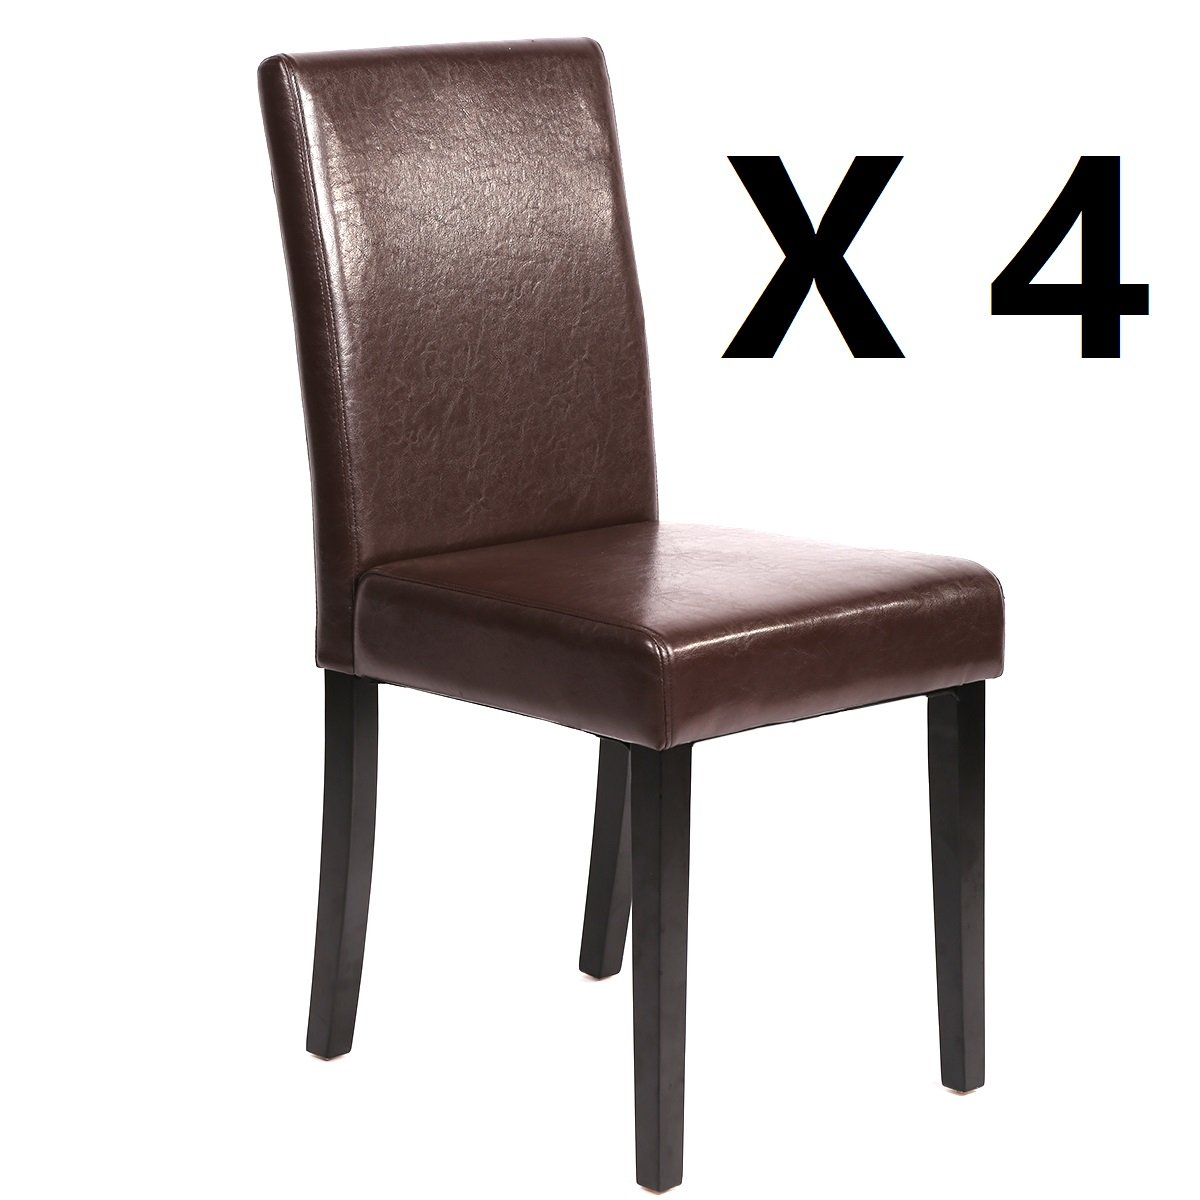 mr direct set of 4 urban style leather dining chairs with solid wood legs chair - Wooden Dining Chairs